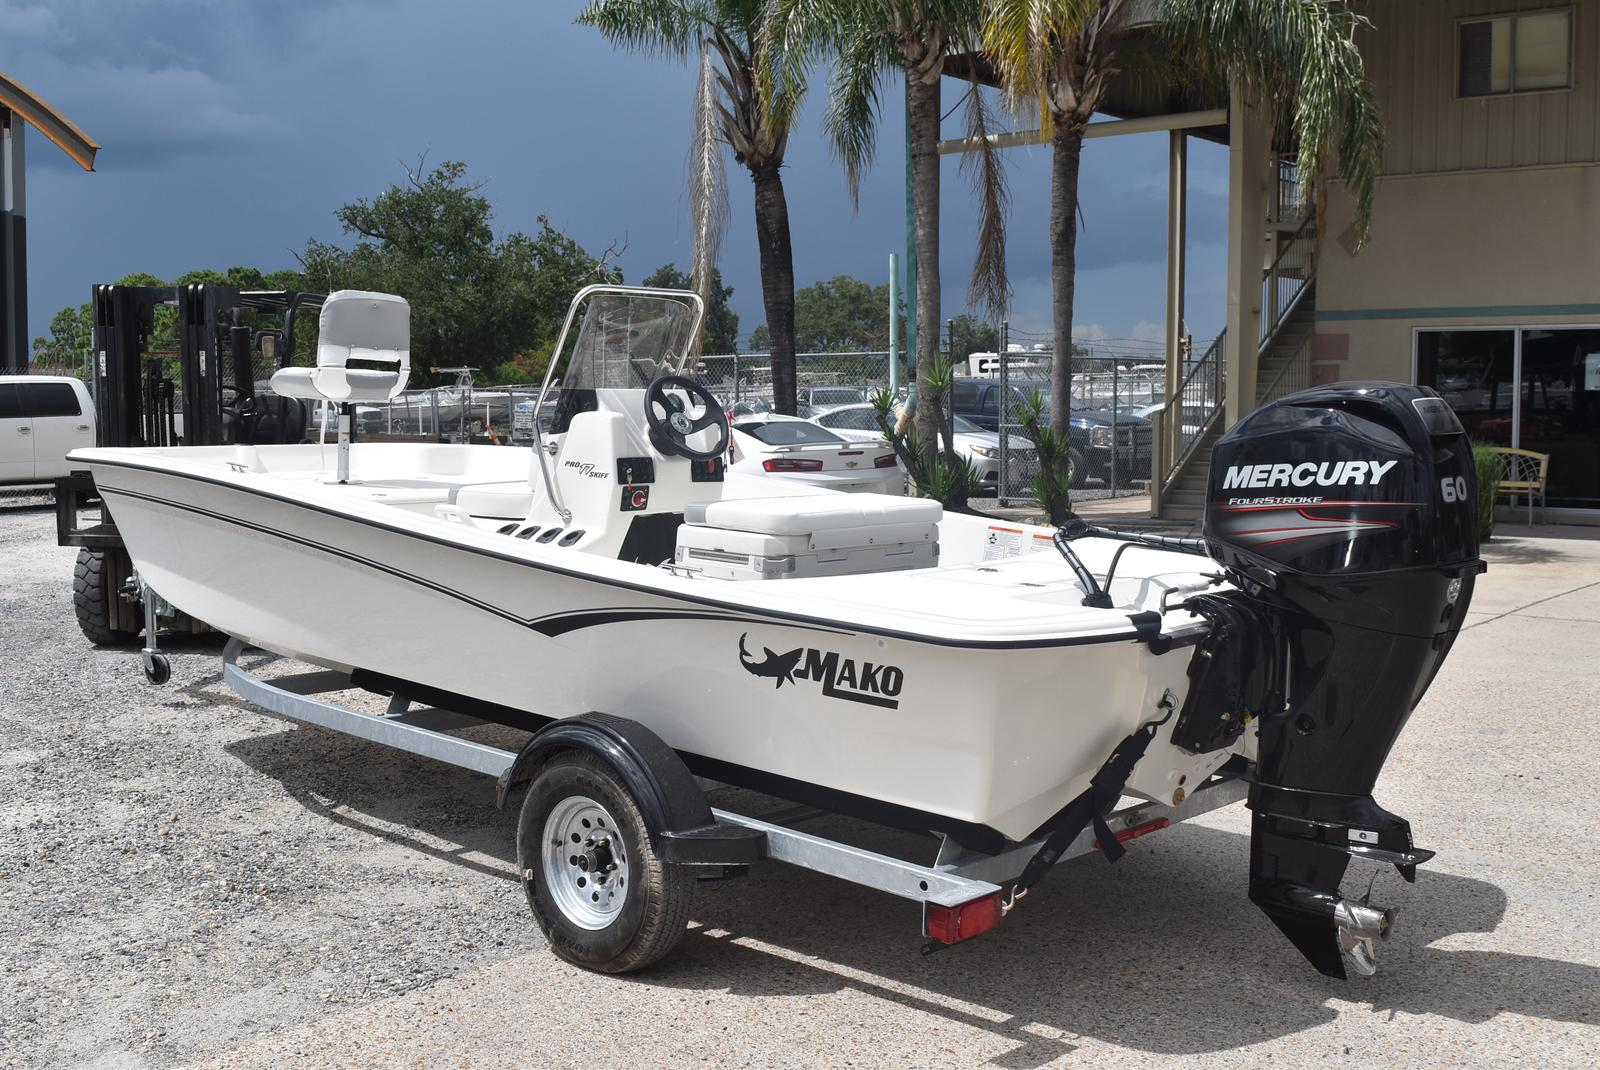 2020 Mako boat for sale, model of the boat is Pro Skiff 17, 75 ELPT & Image # 209 of 702